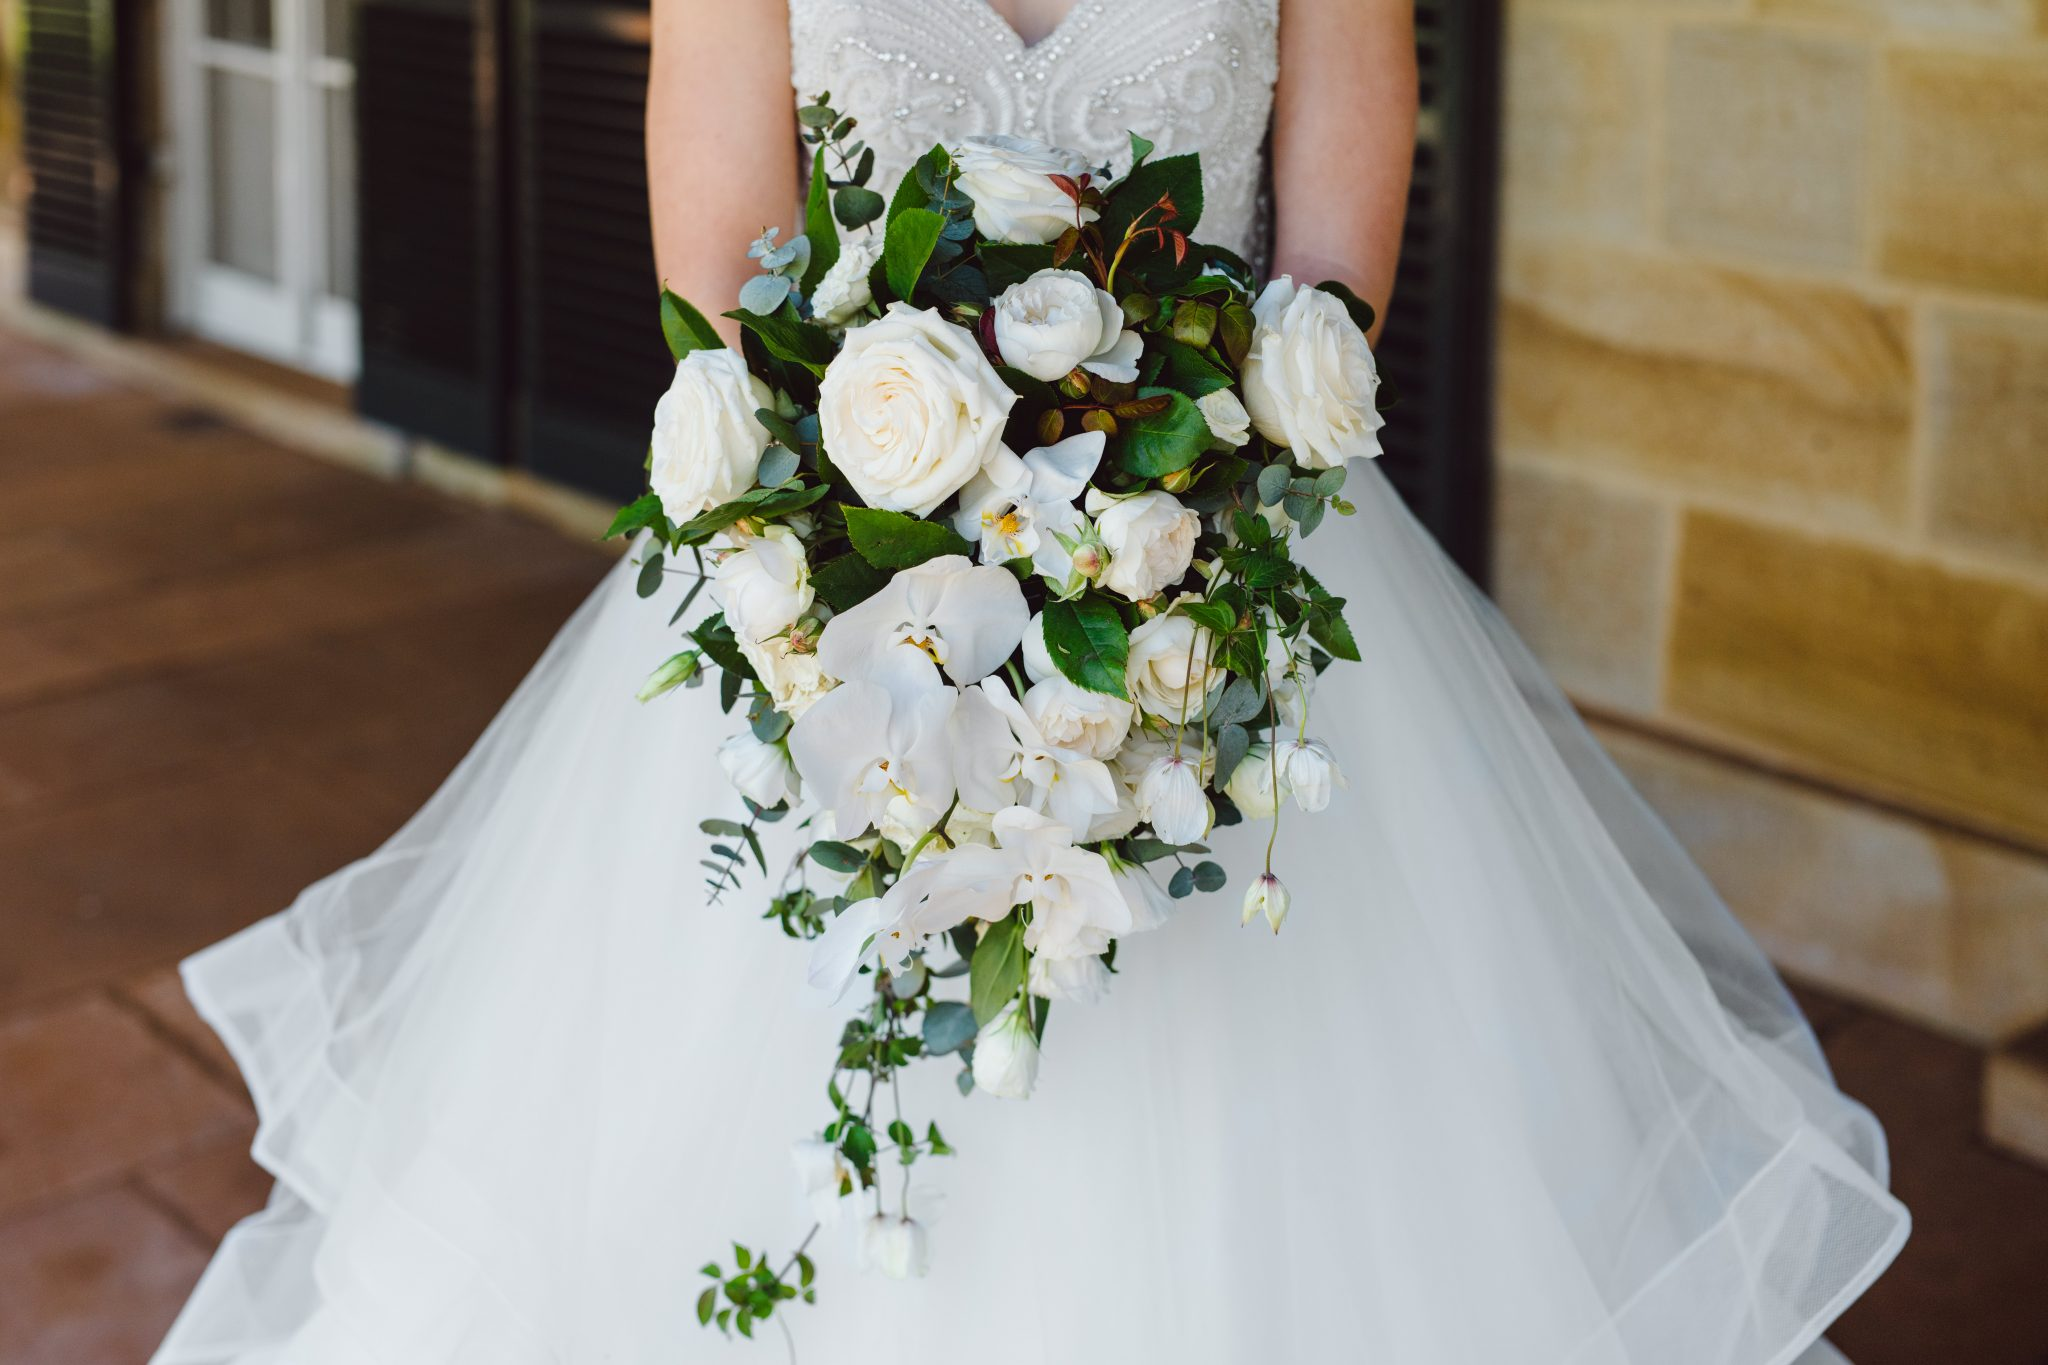 The Bridal Bouquet - Decorations by Jelena